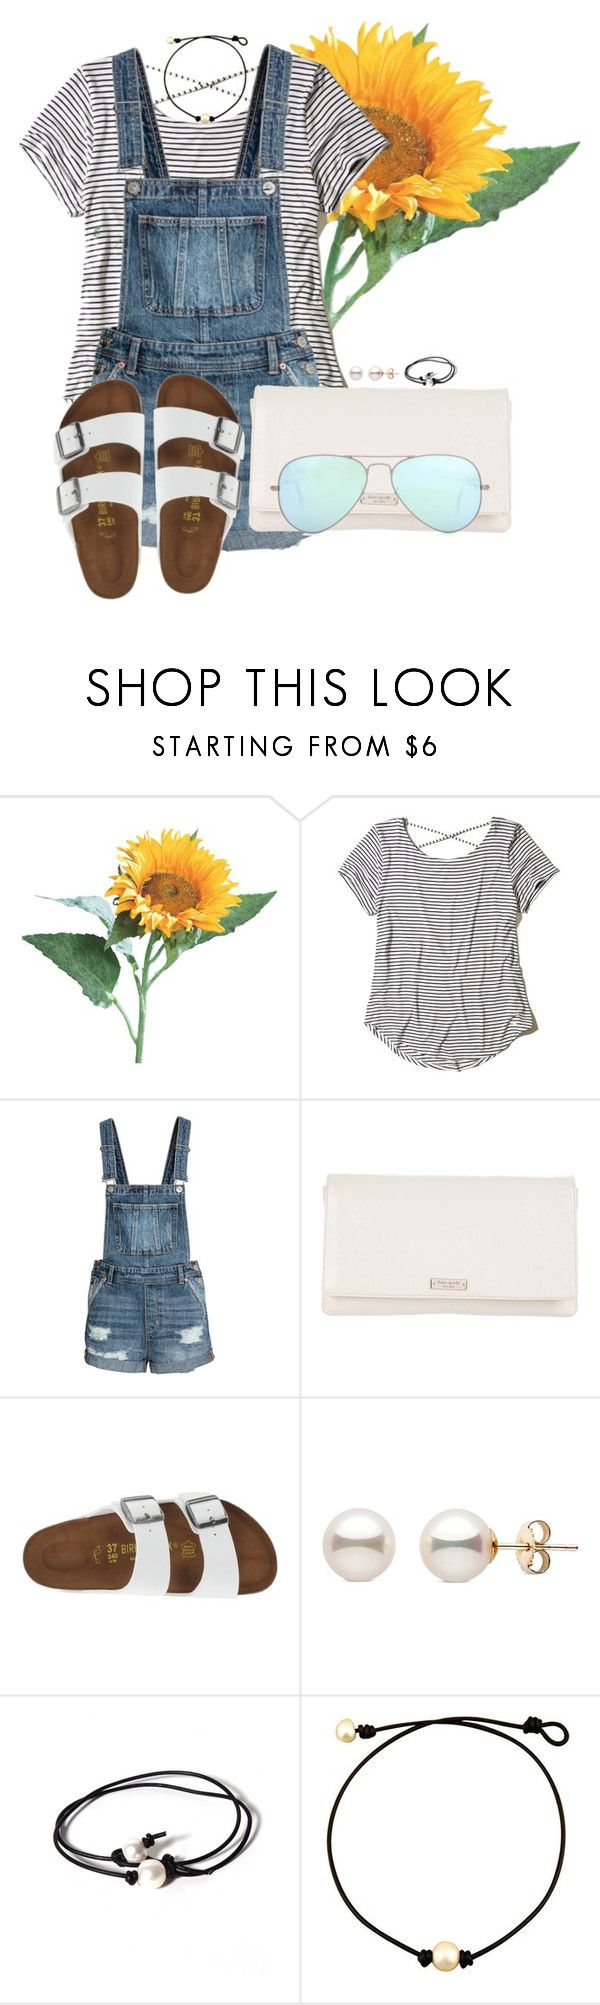 """""""Set #3 By My Little Brother!"""" by annaewakefield ❤ liked on Polyvore featuring Hollister Co., Kate Spade, Birkenstock, Joie and Ray-Ban"""